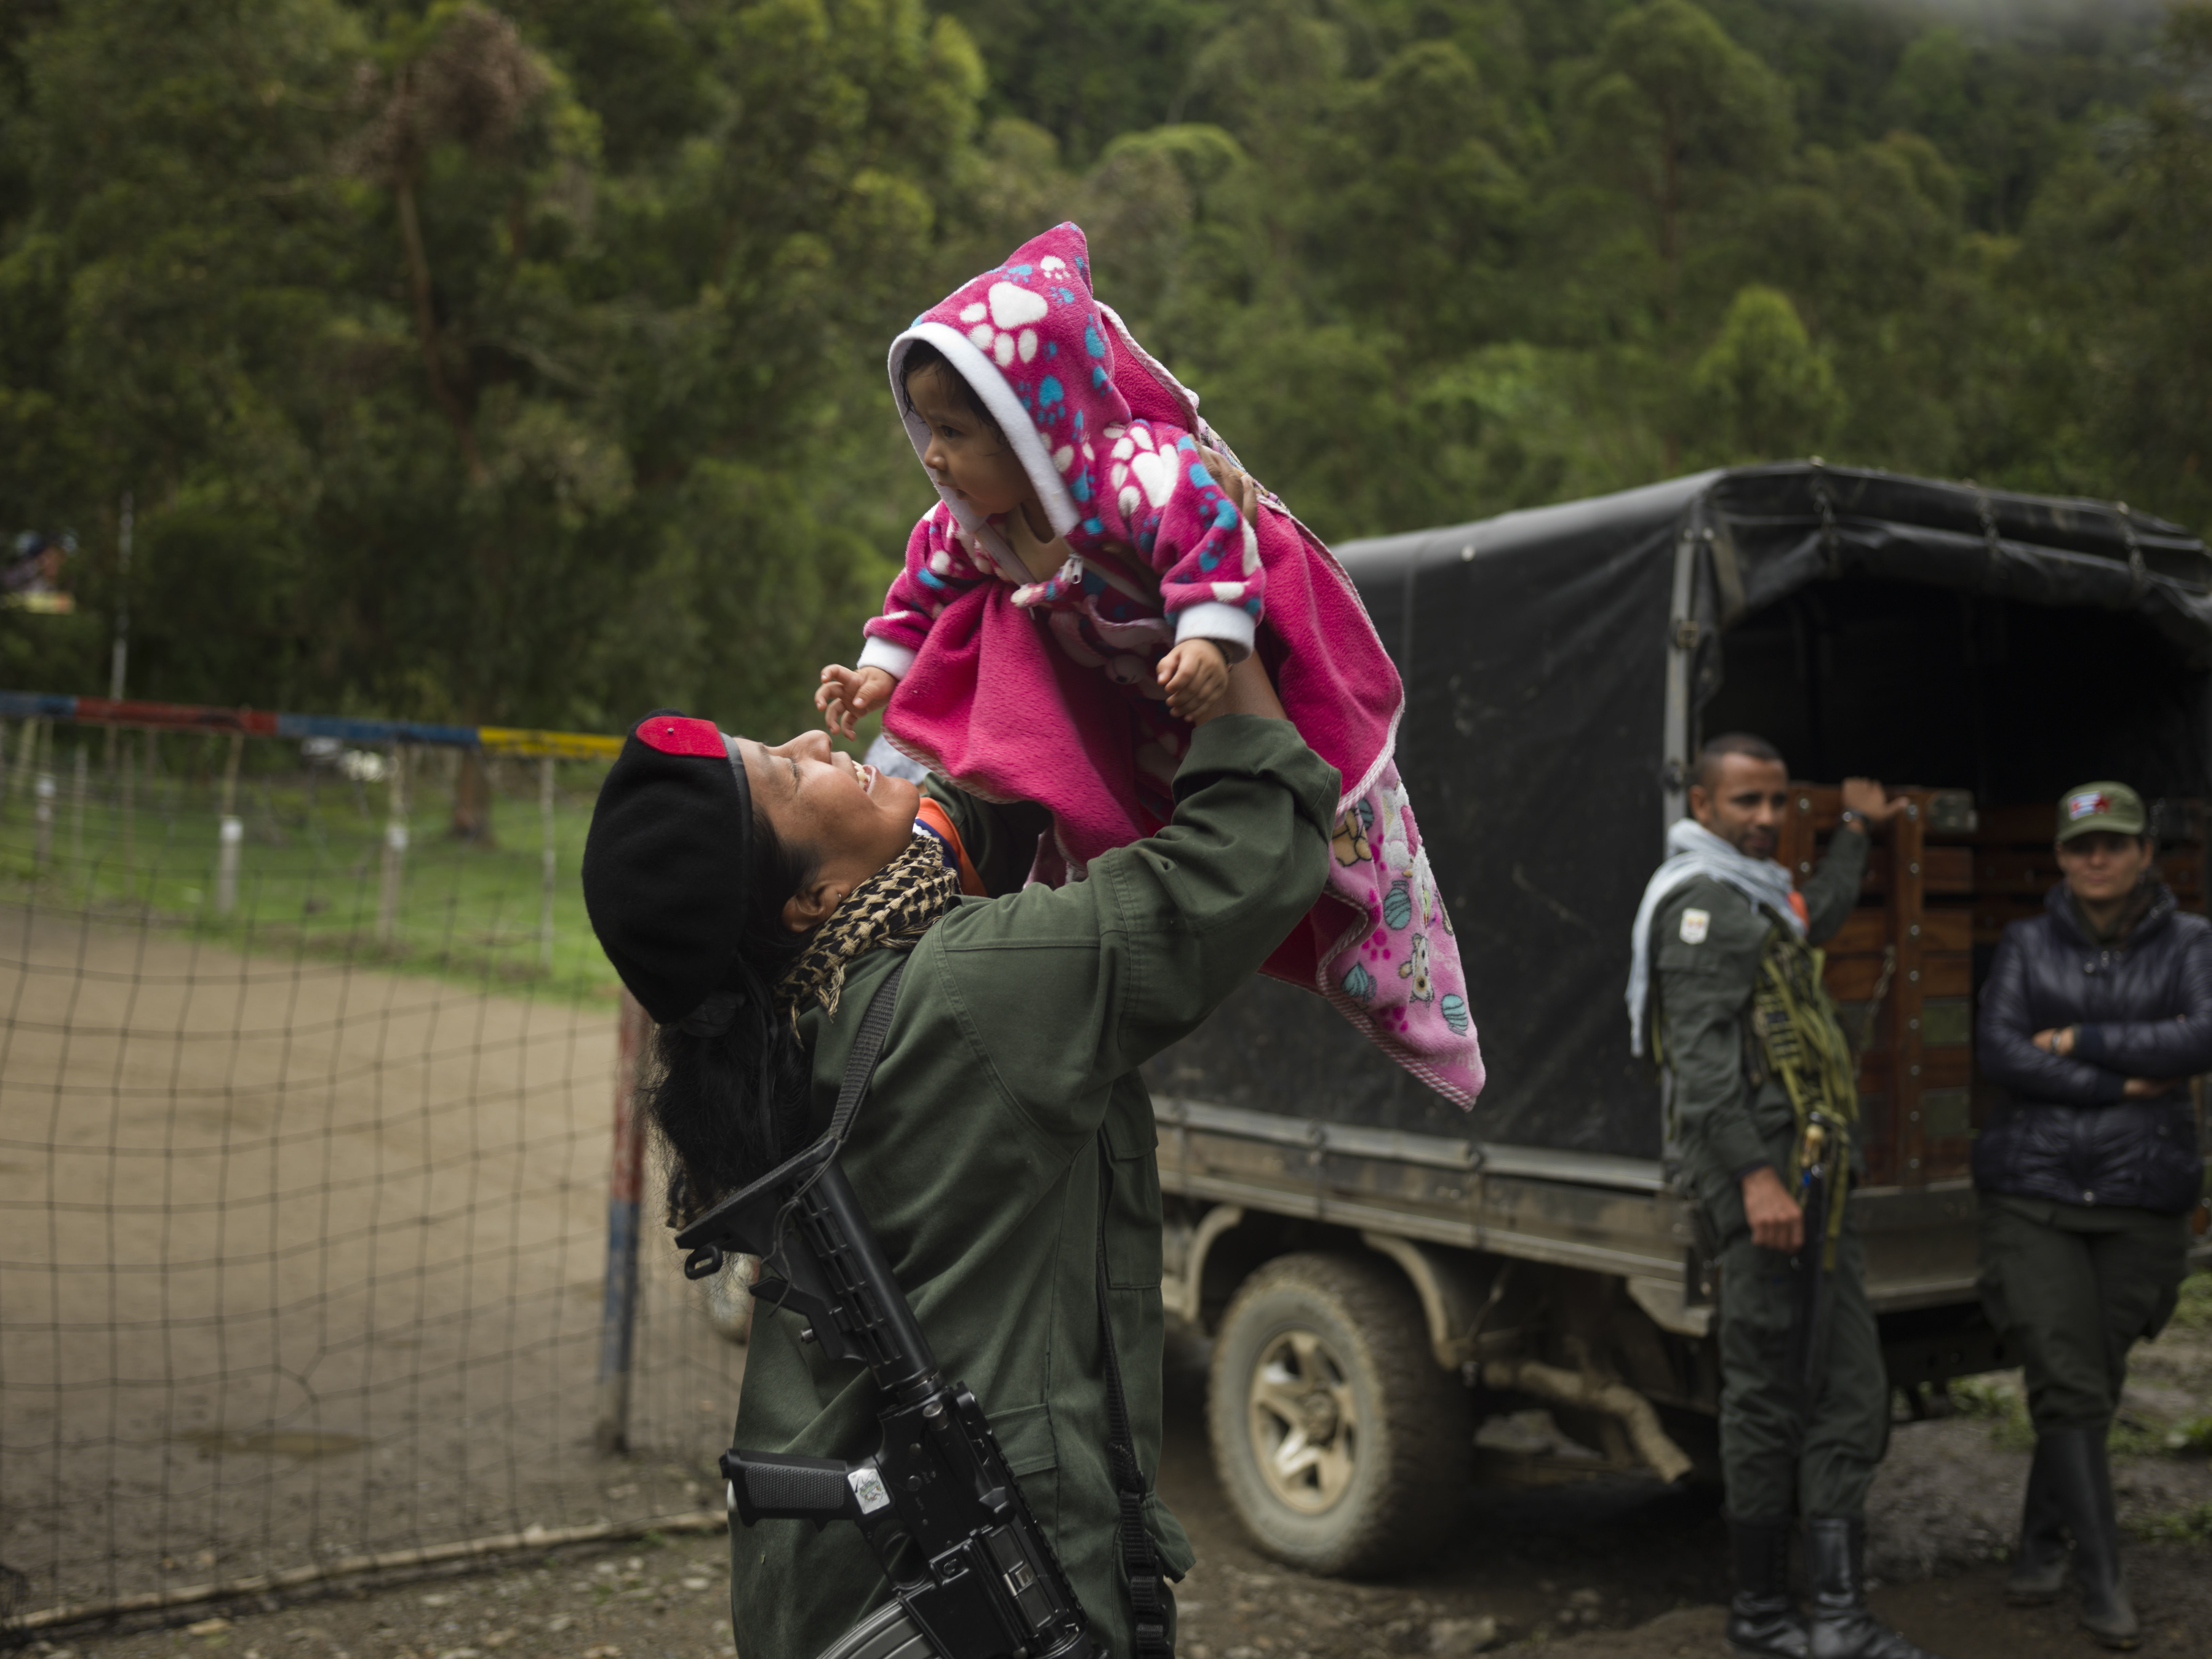 COLOMBIA. 2017. A fighter playing with a comrade's child. For the first time since FARC's formation, female members are allowed to keep their babies with the permission of their commander.